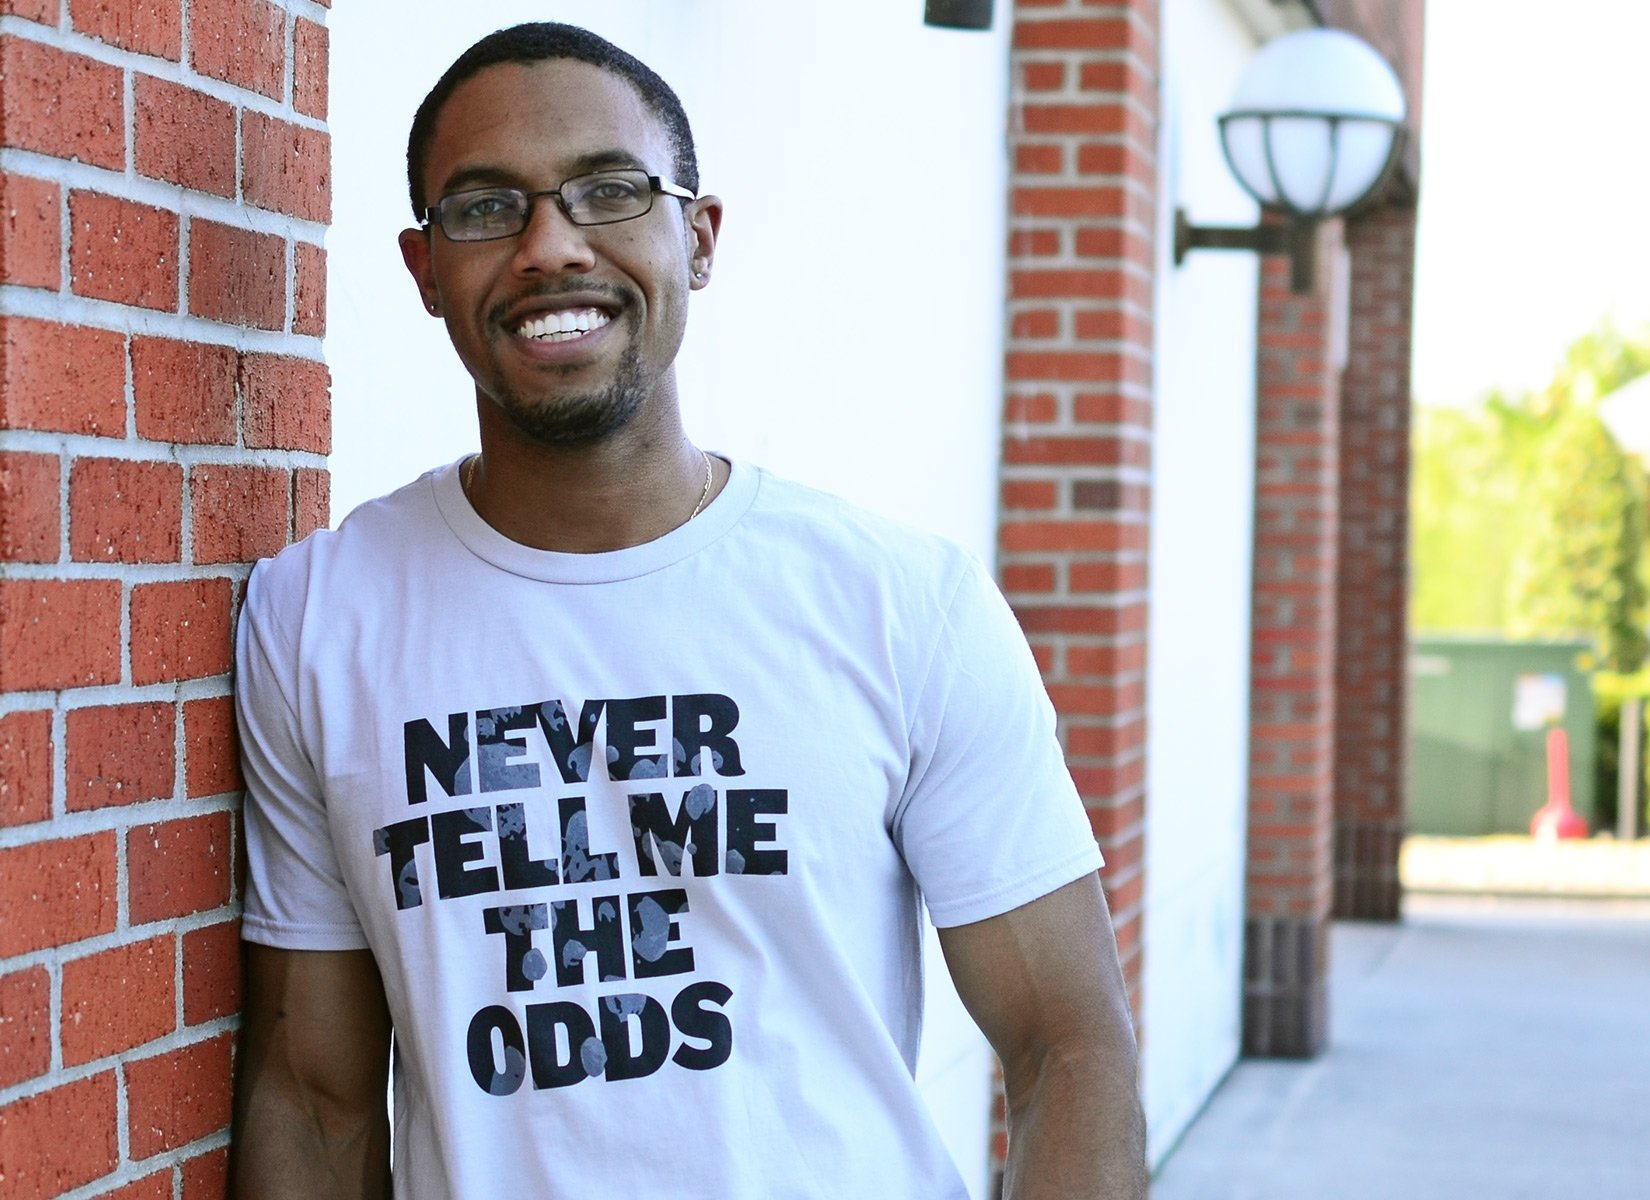 Never Tell Me The Odds on Mens T-Shirt